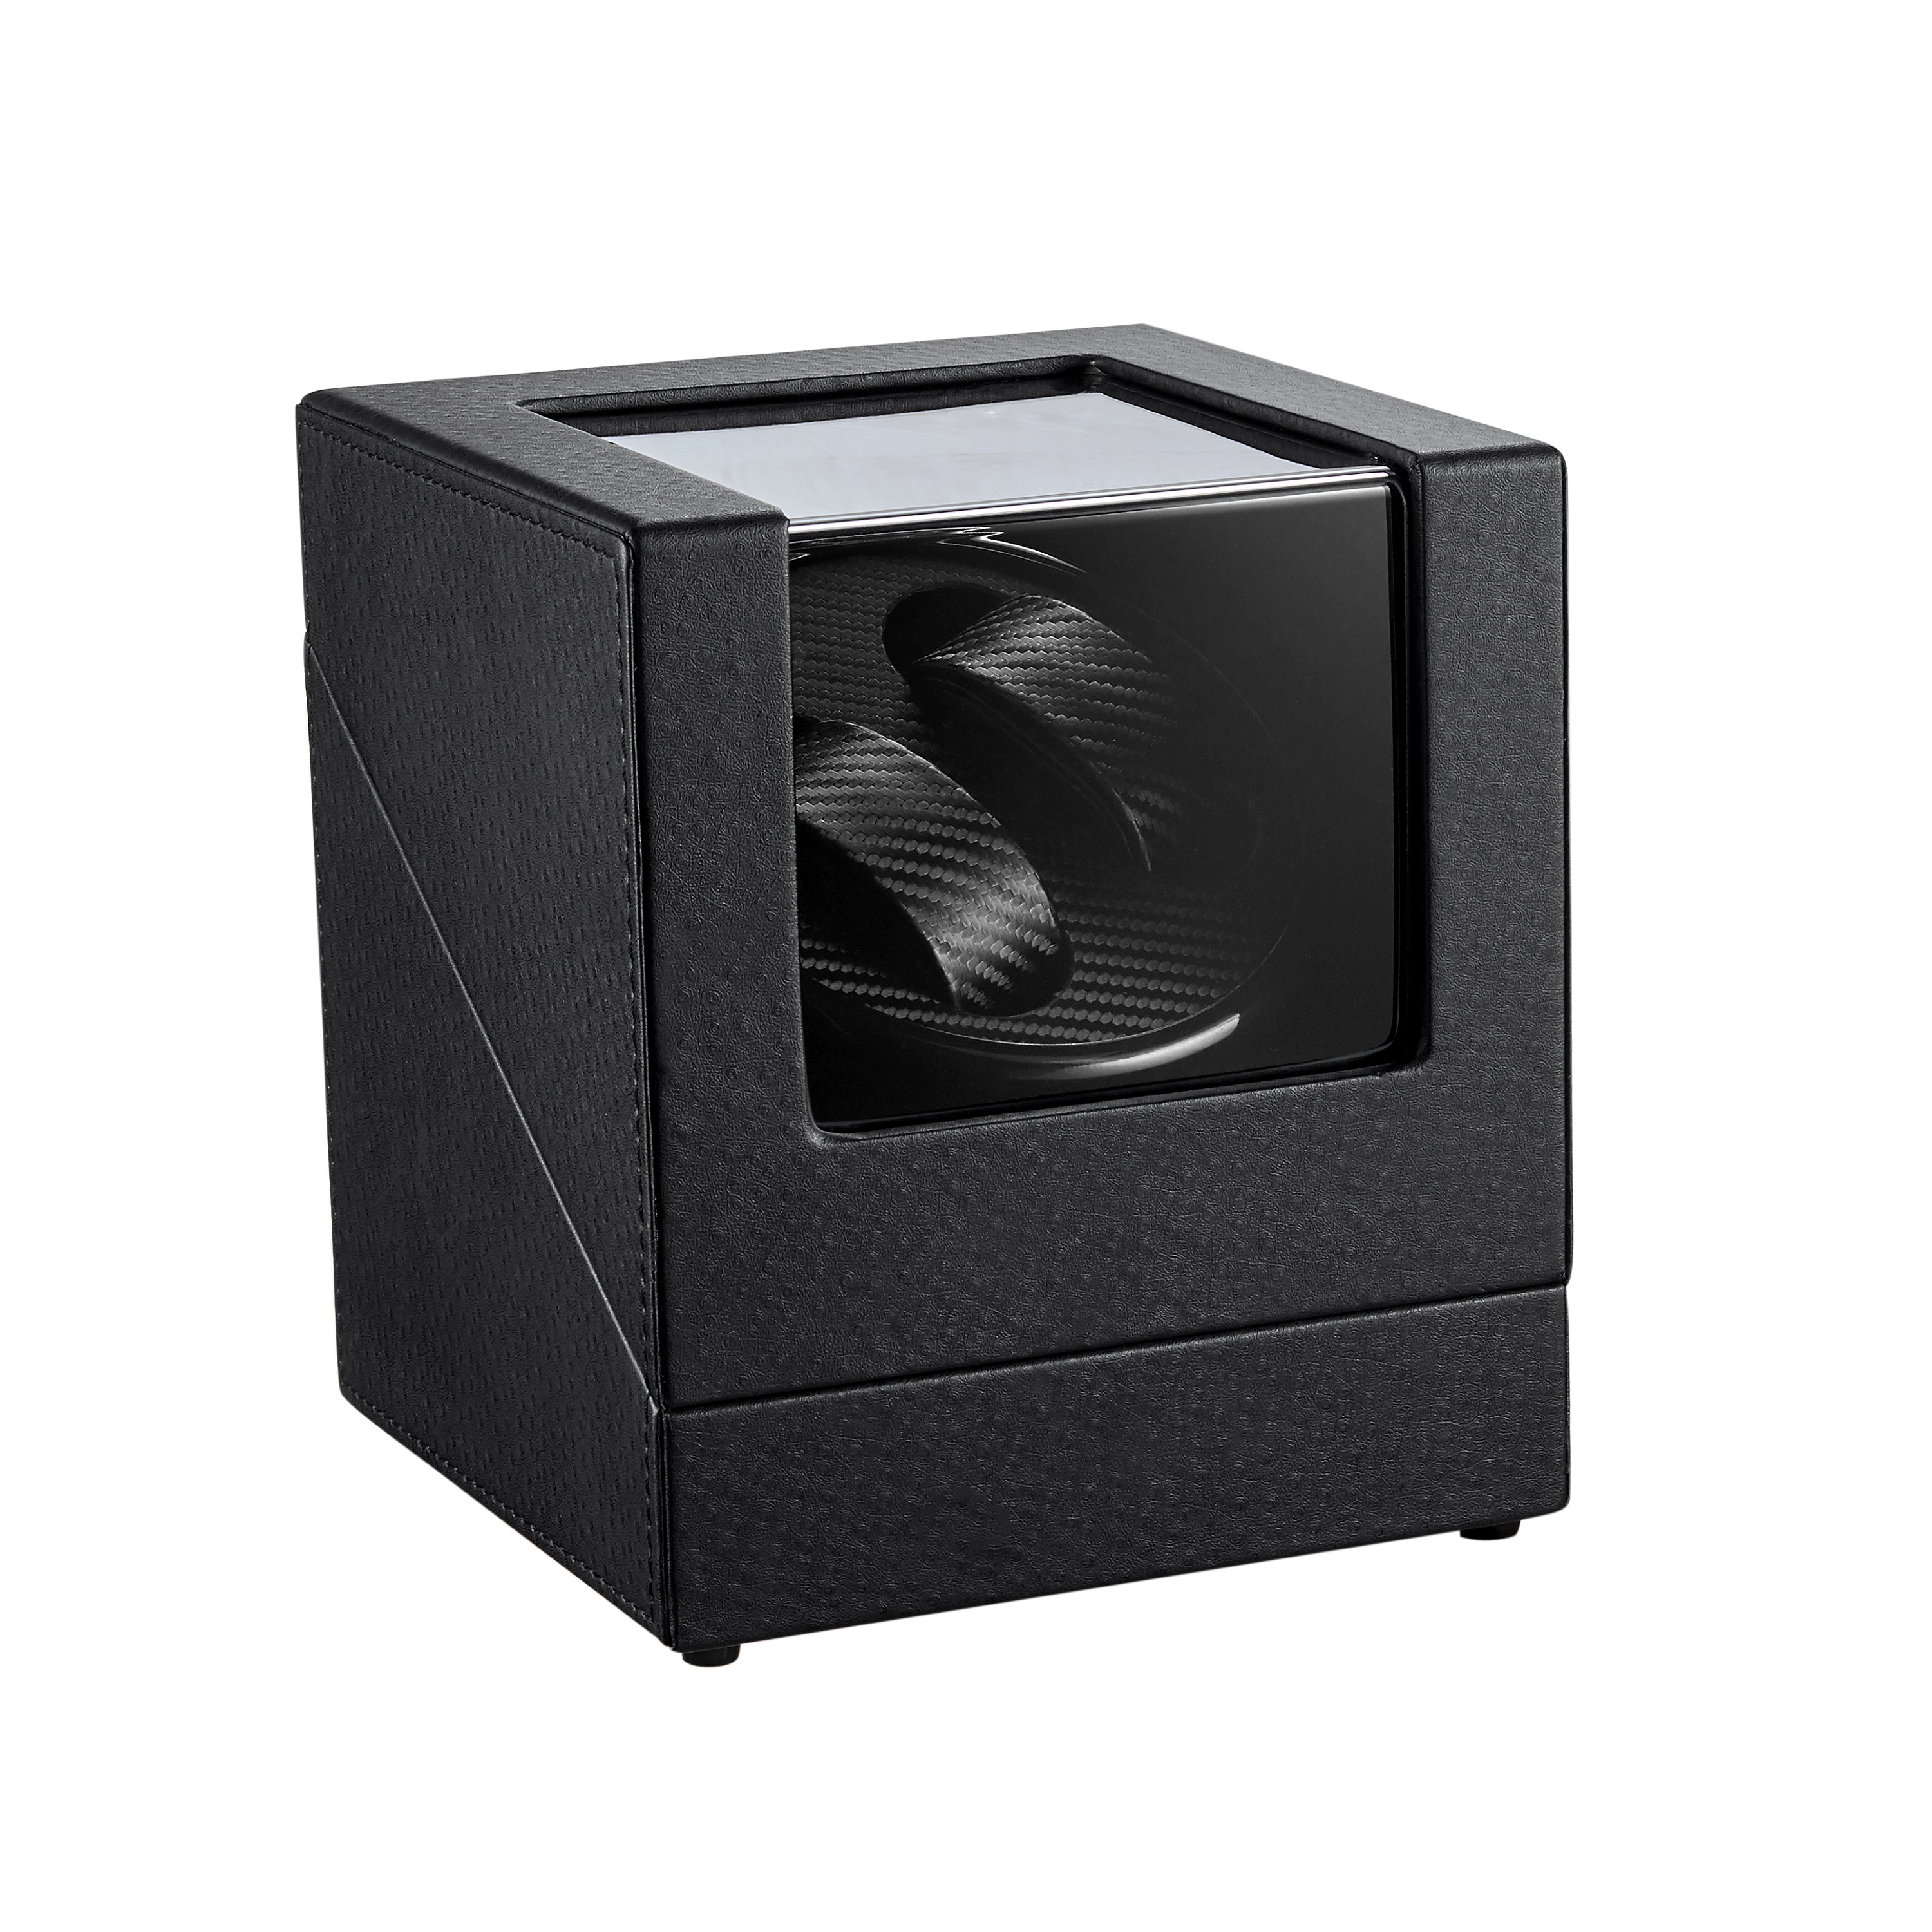 2019 New Motor Shake Watch Winder Holder Automatic Mechanical Watch Winding Box Jewelry Watches Box For EU/US/AU/UK Plug W141B | Watch Winders